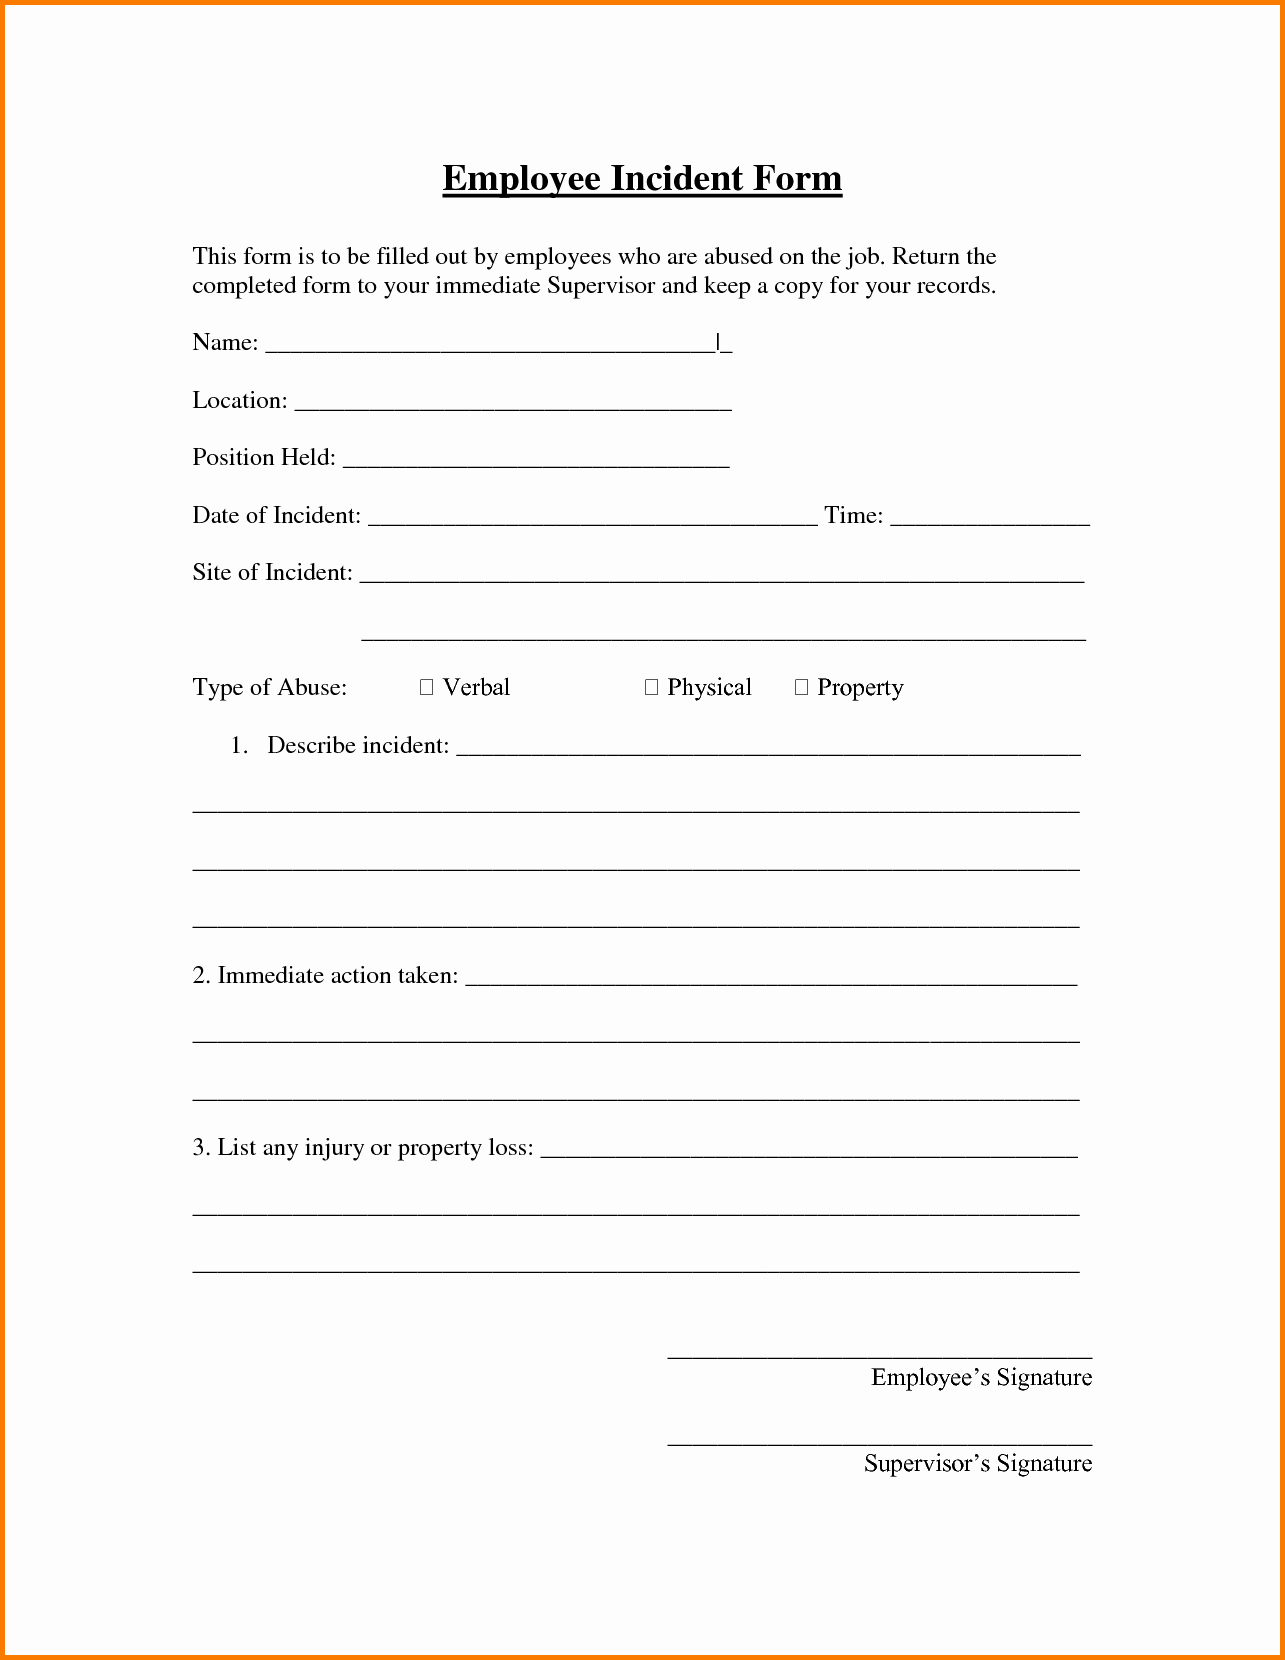 Workplace Incident Report form Template Free Awesome Employee Incident Report Sample